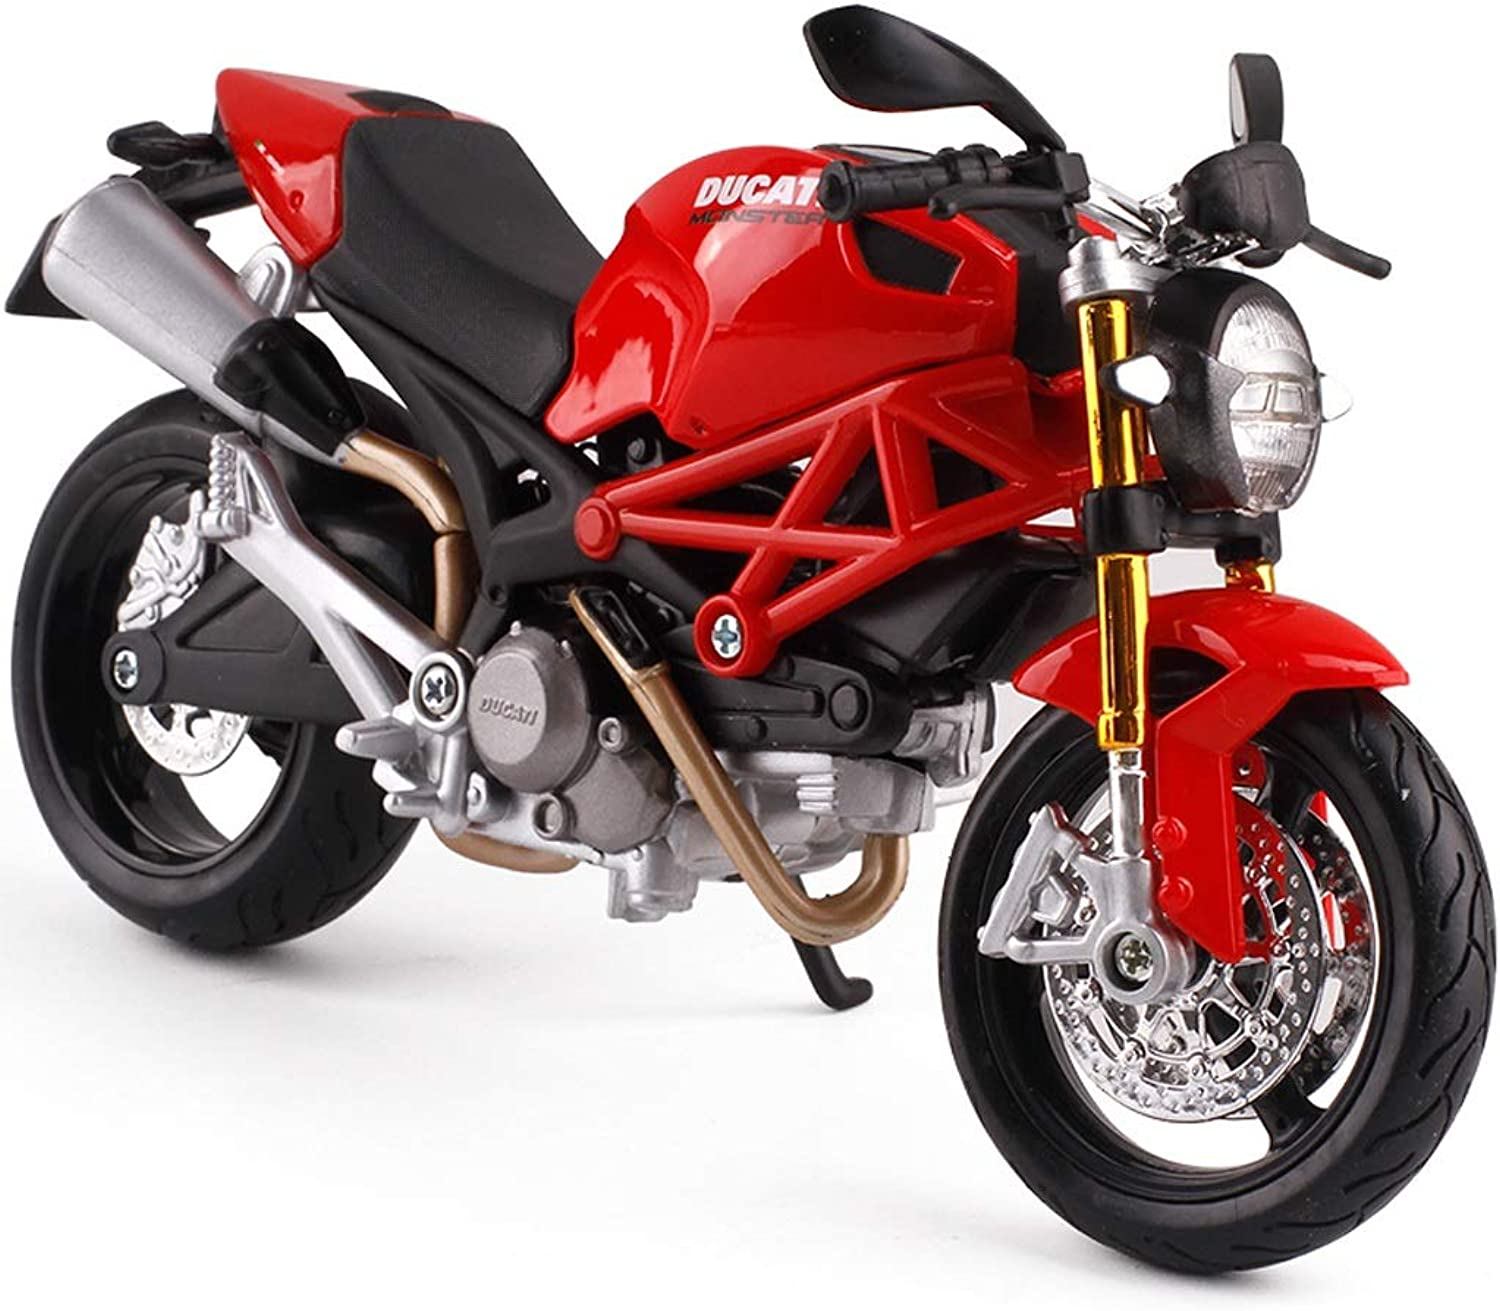 LSXLSD Alloy Model Toy Simulation Ducati Motorcycle Toy Desktop Decoration Gift Pocket Toy